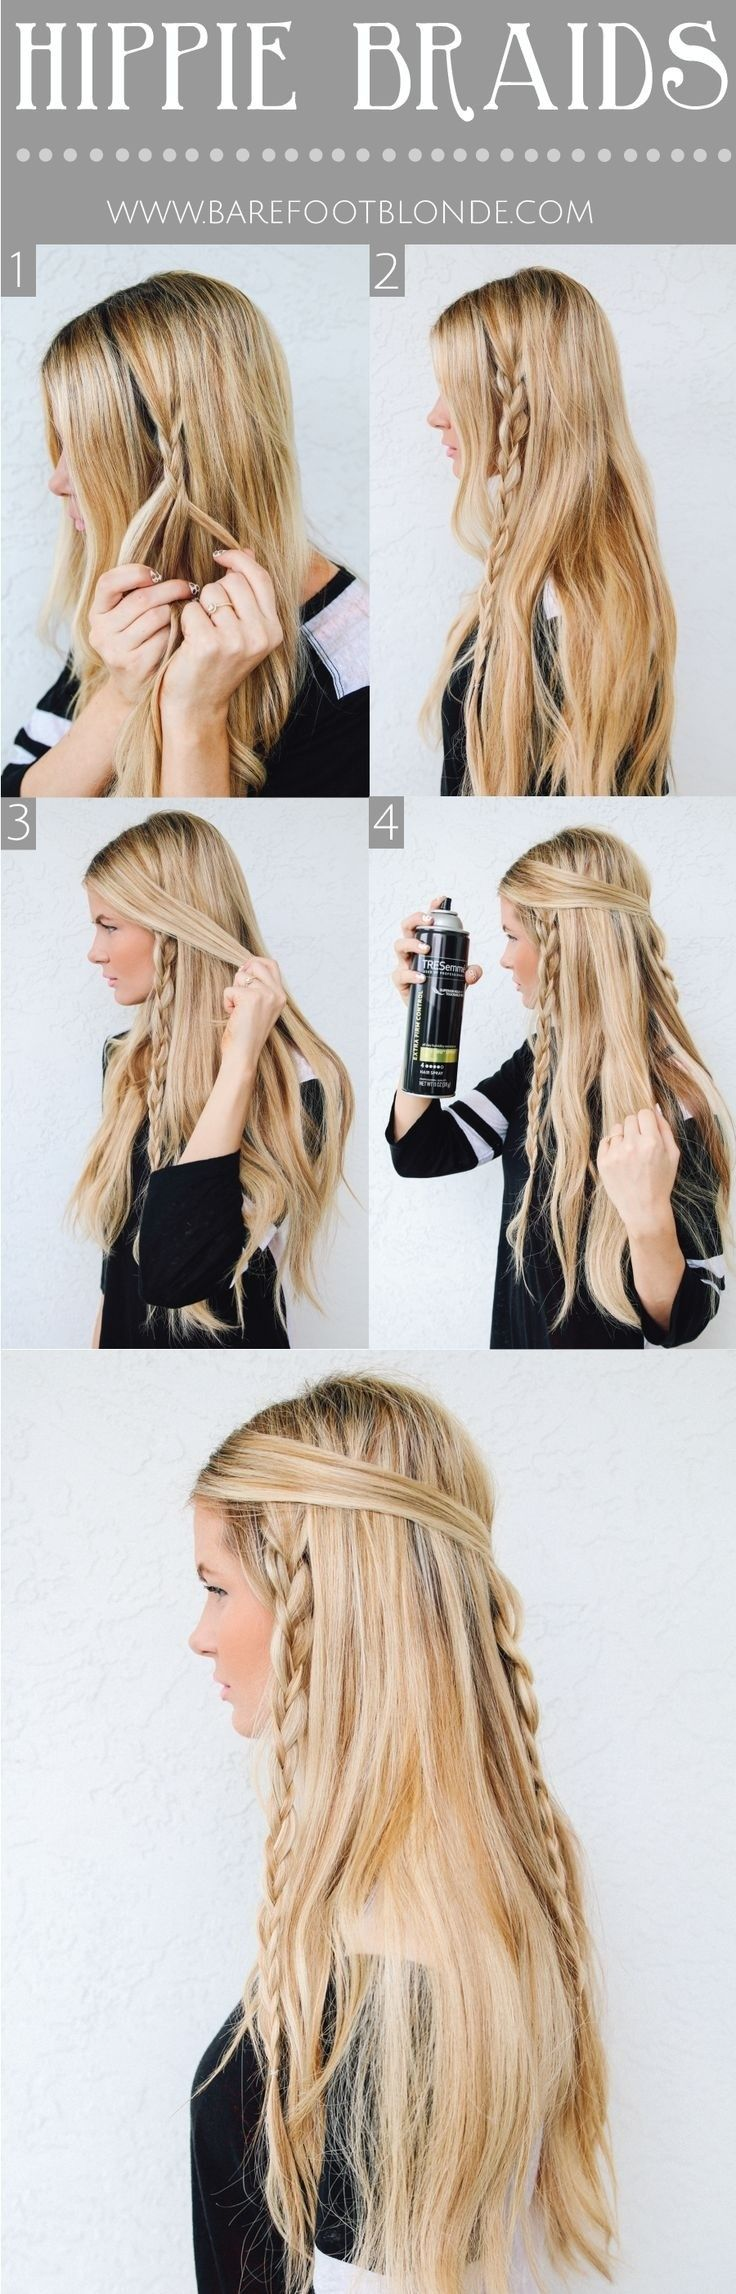 Hippie Braids for Long Hair